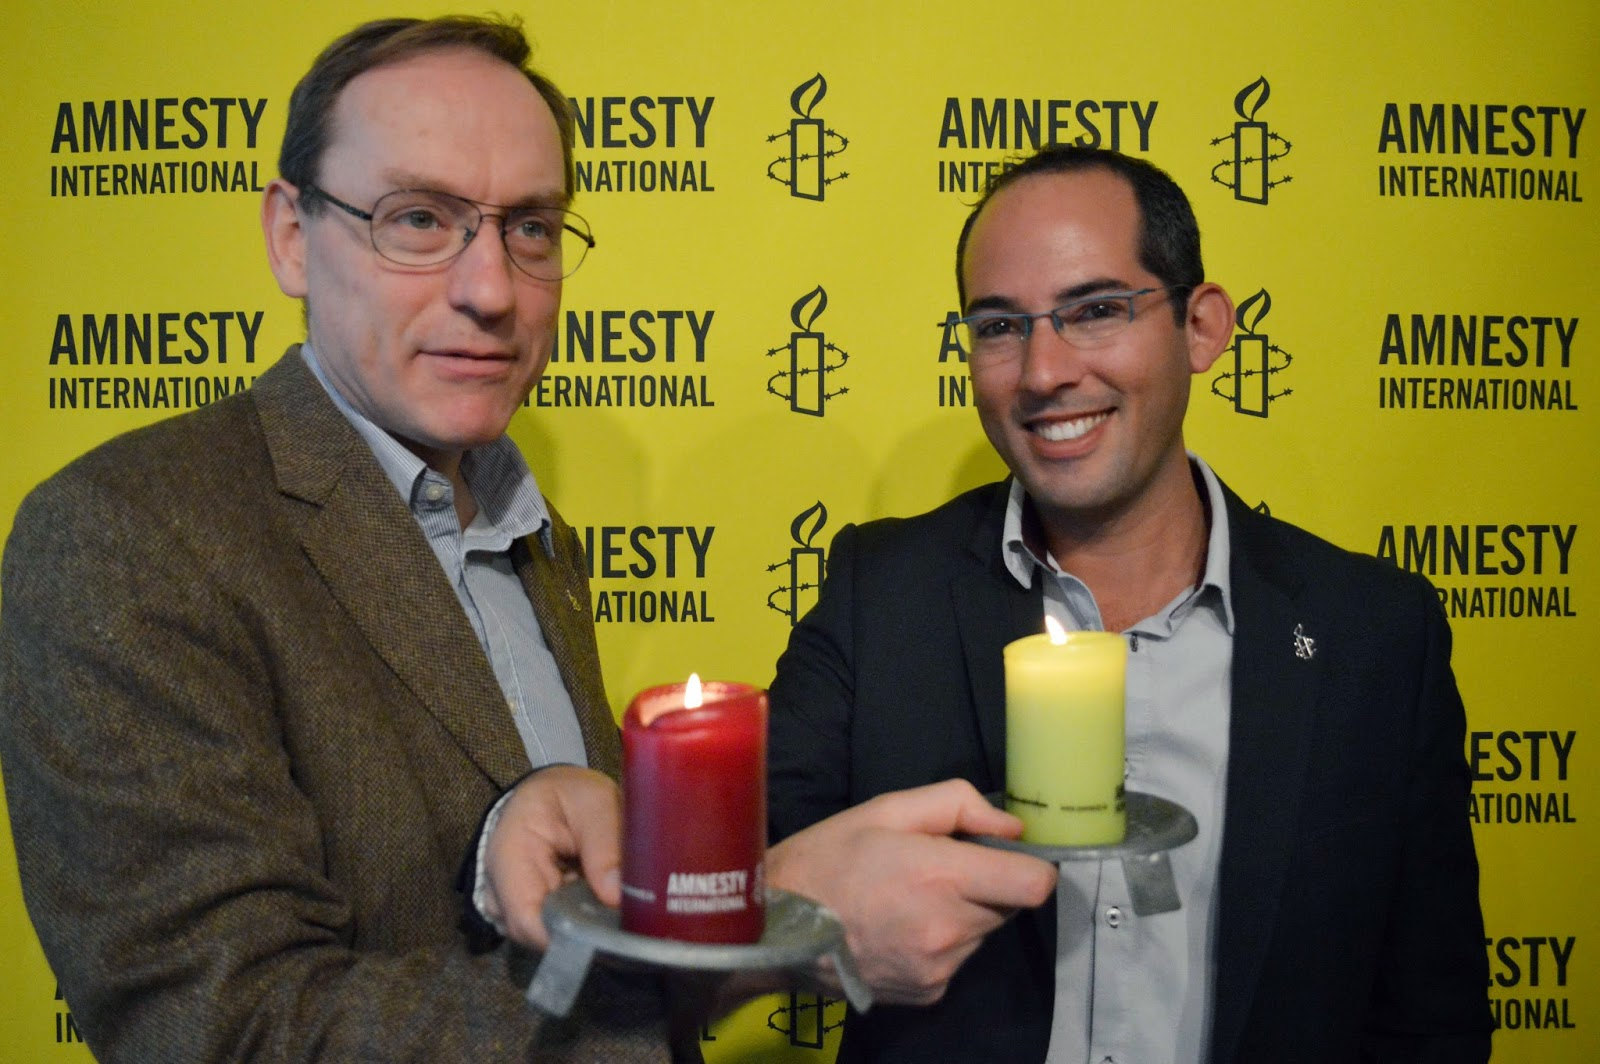 http://amnesty-luxembourg-photos.blogspot.com/2014/11/press-conference-yonatan-gher.html